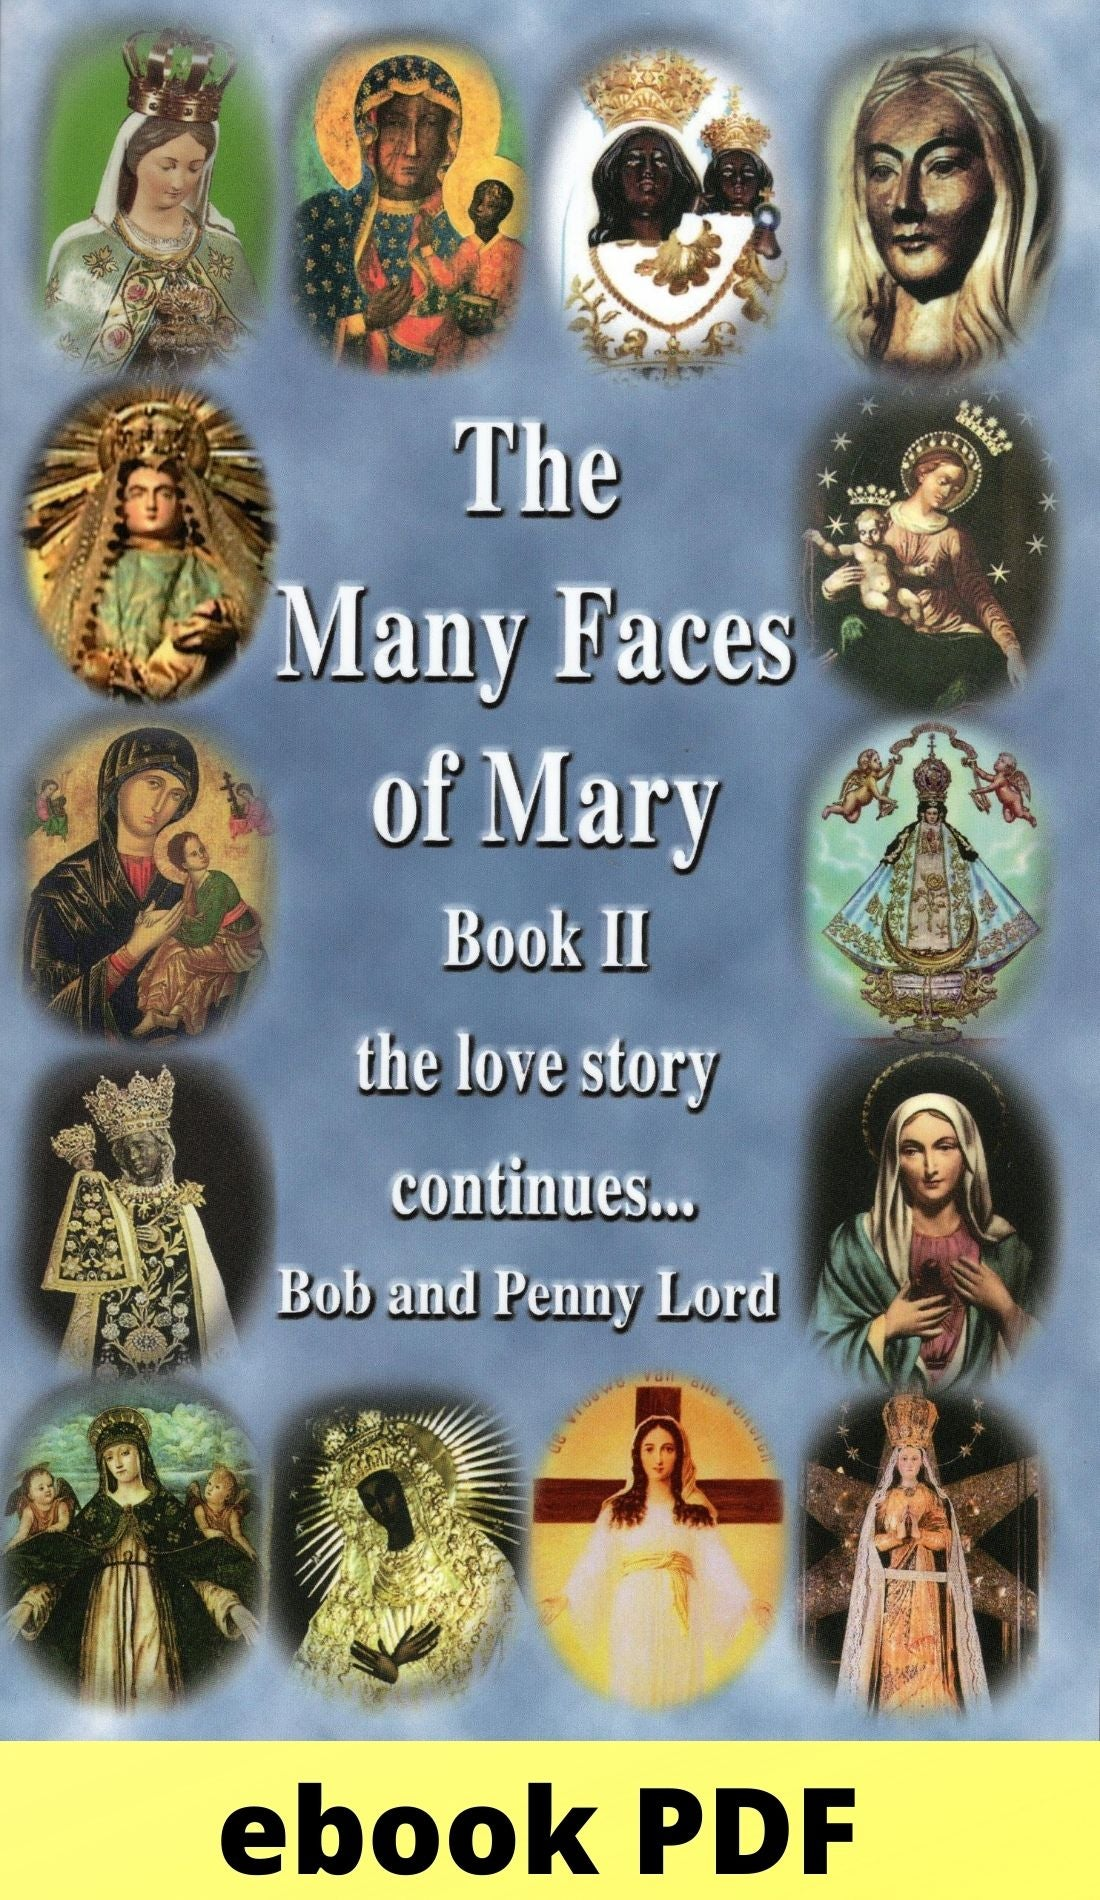 Many Faces of Mary Book 2 ebook PDF - Bob and Penny Lord